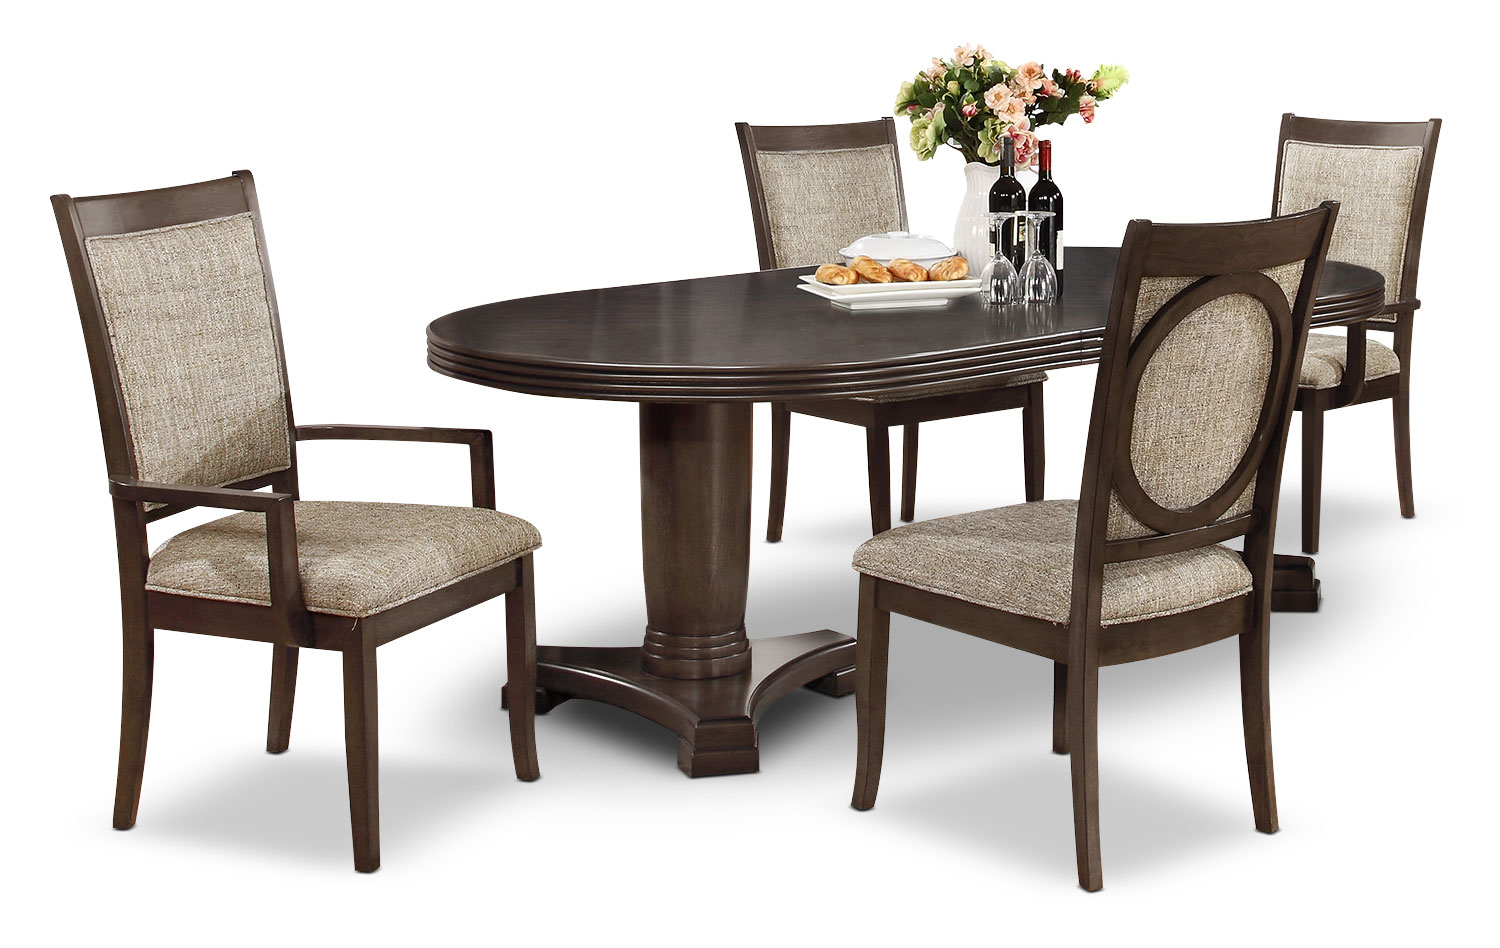 Dining Room Furniture - Beaumont 5-Piece Dining Package